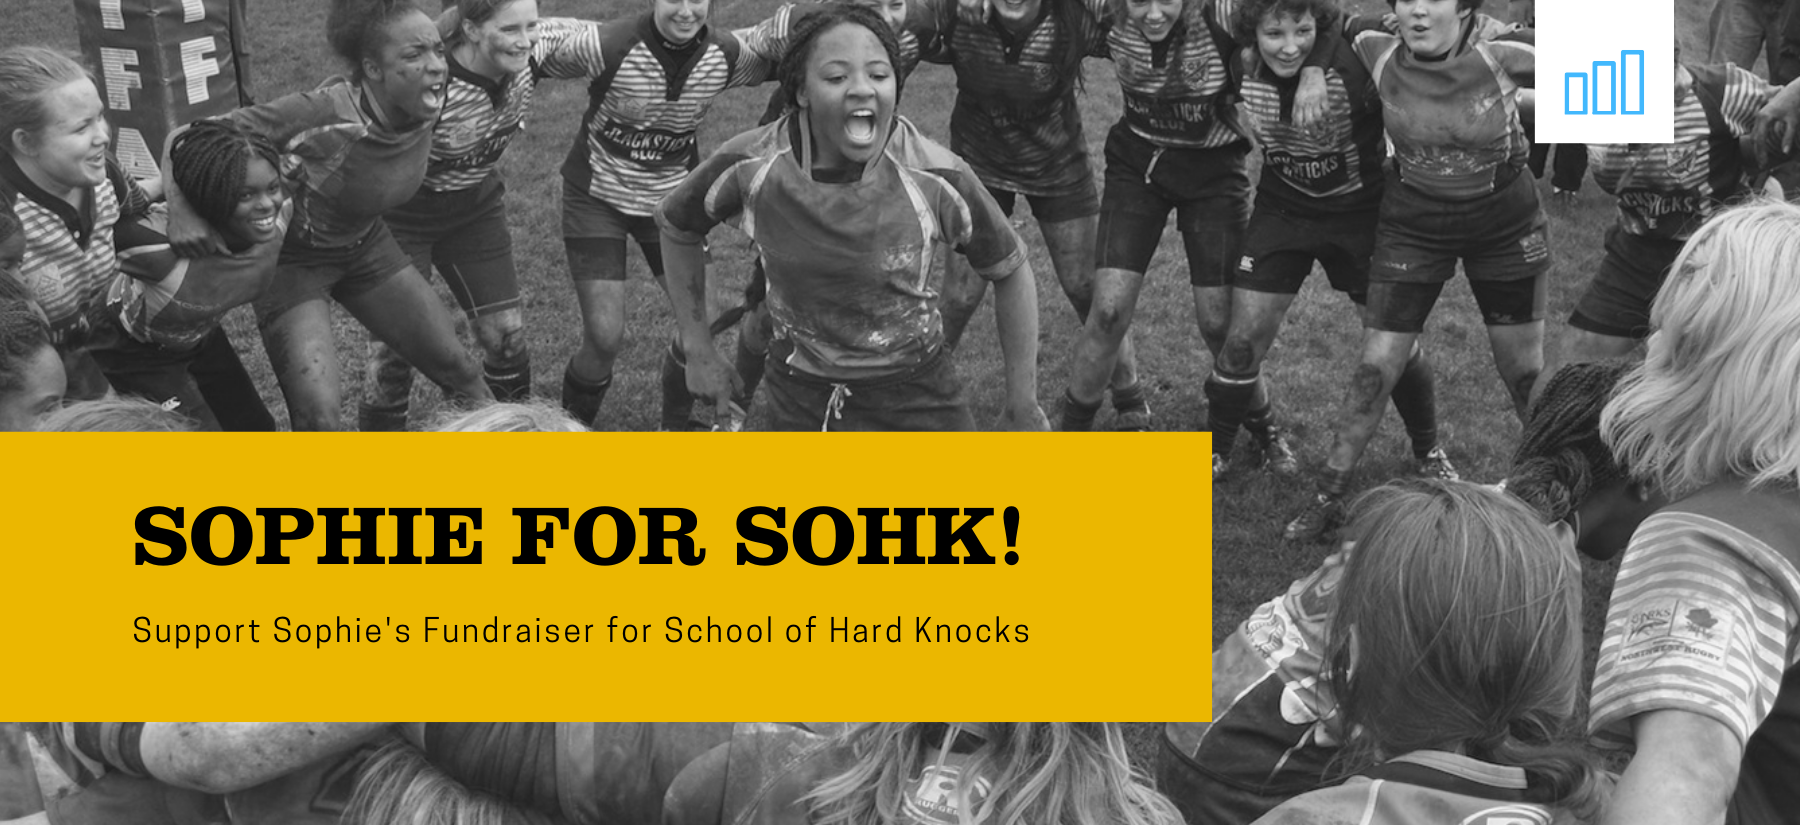 Support Sophies Fundraiser for SOHK